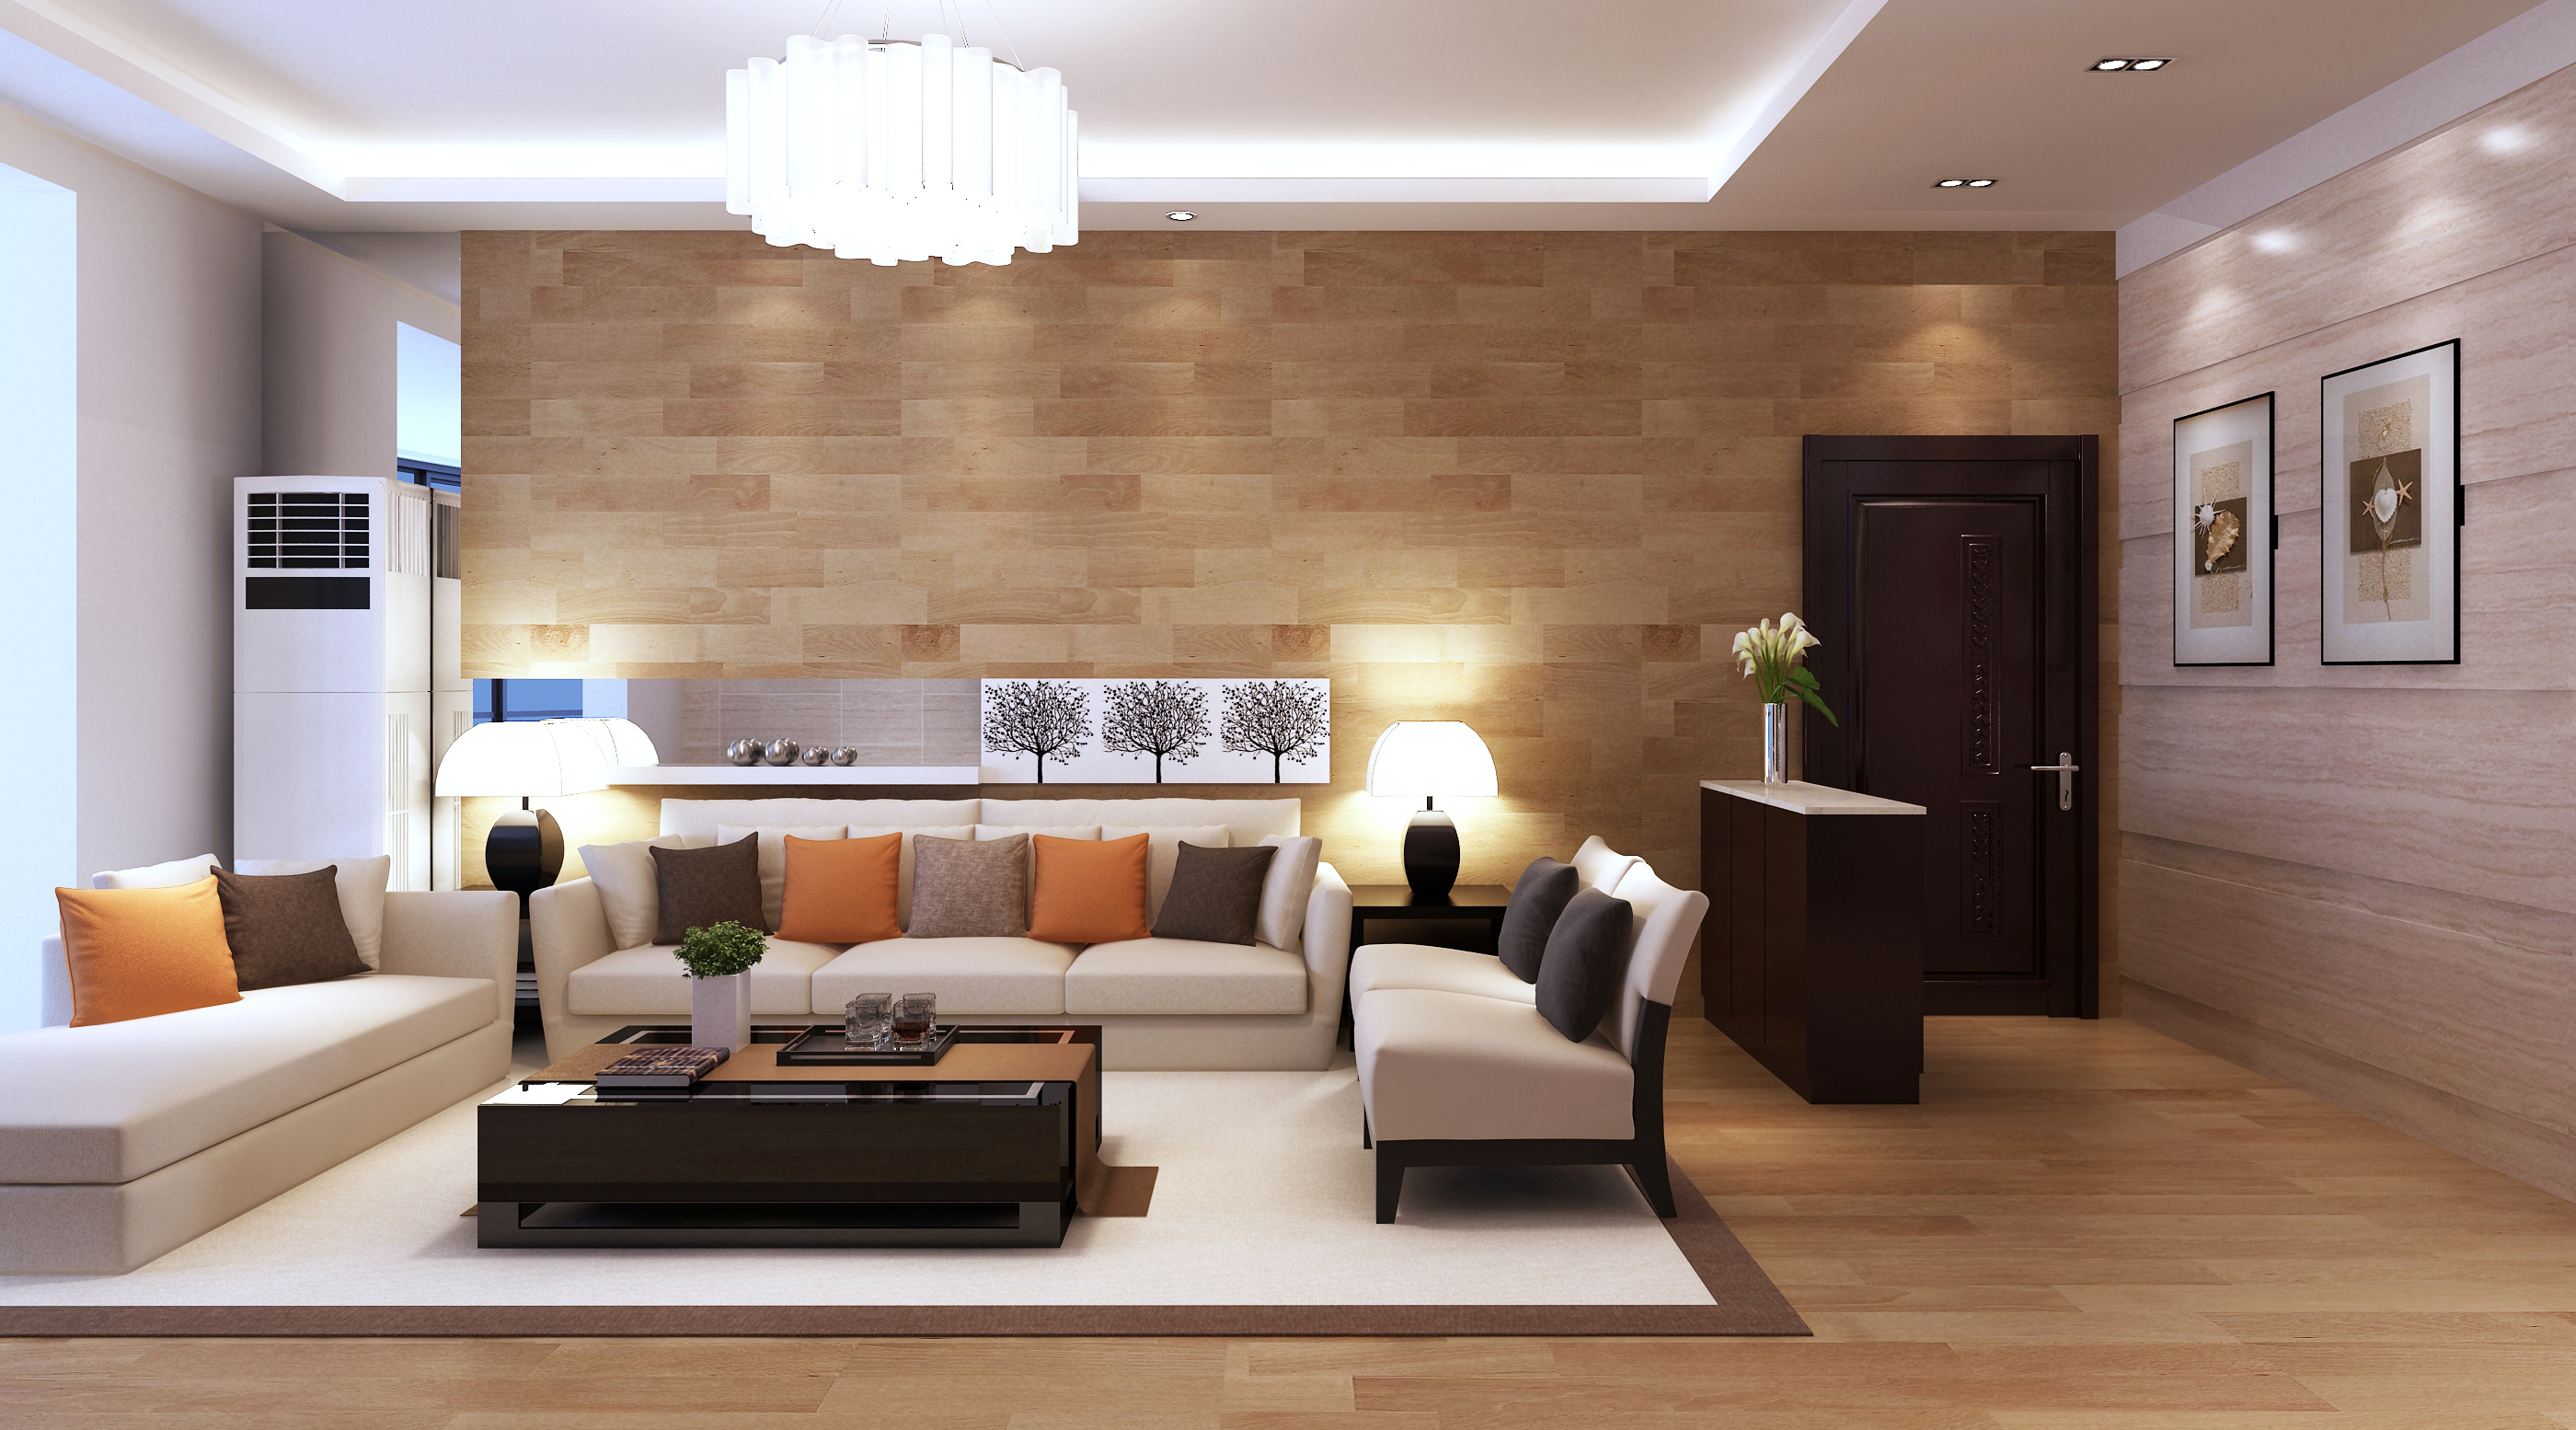 Model Living Room Awesome 3D Model Modern Living Room Architectural  Cgtrader Design Ideas